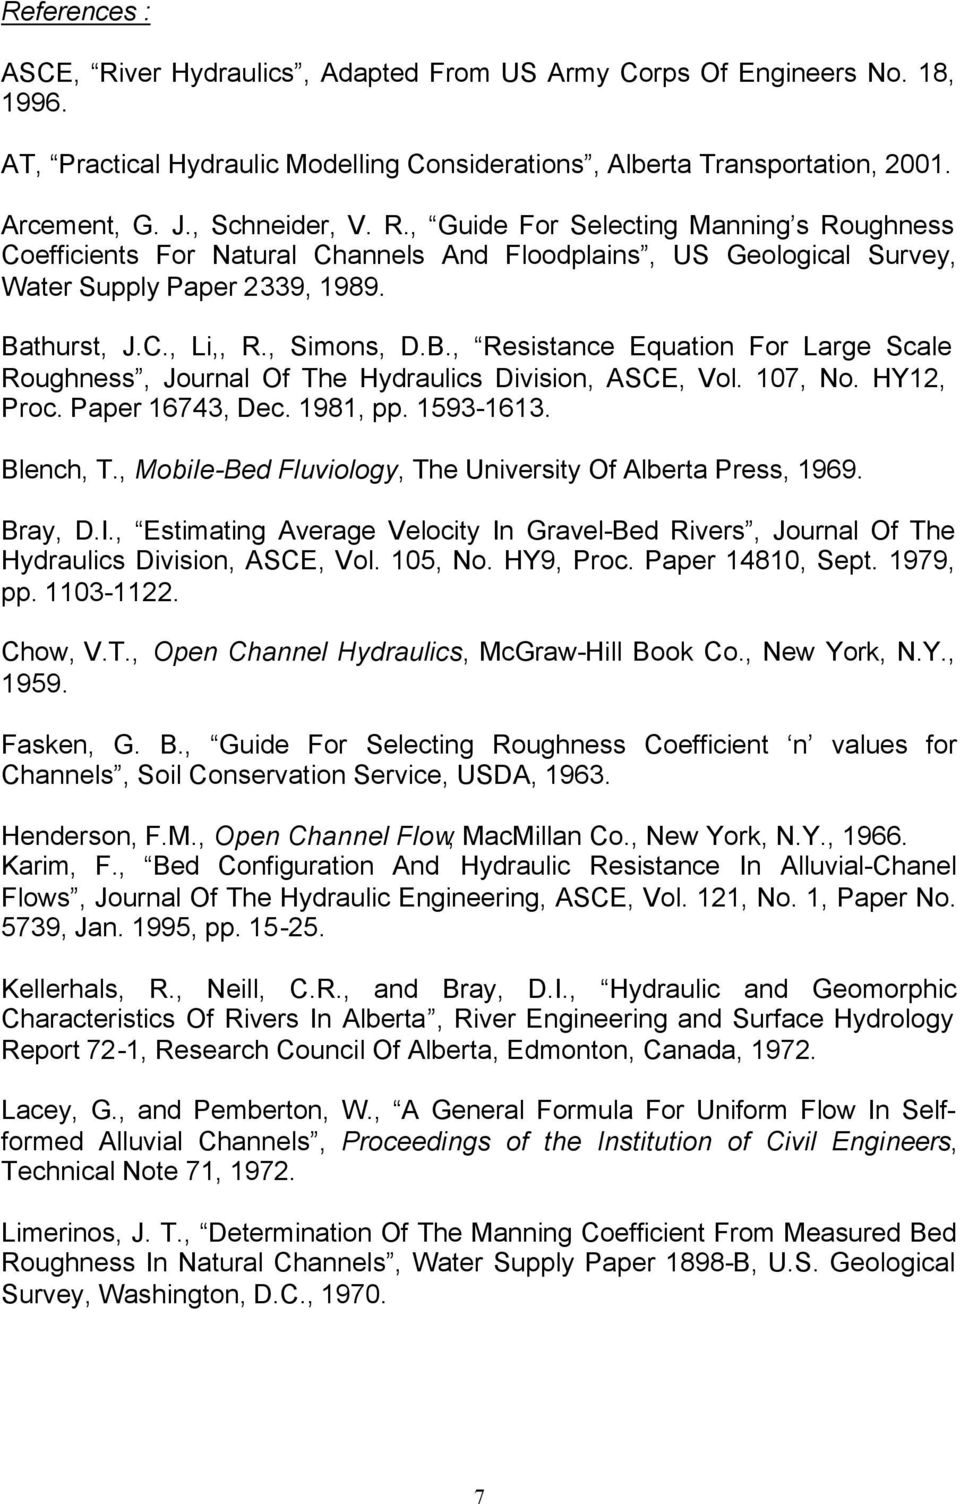 B., Resistance Equation For Large Scale Roughness, Journal Of The Hydraulics Division, ASCE, Vol. 107, No. HY12, Proc. Paper 16743, Dec. 1981, pp. 1593-1613. Blench, T.